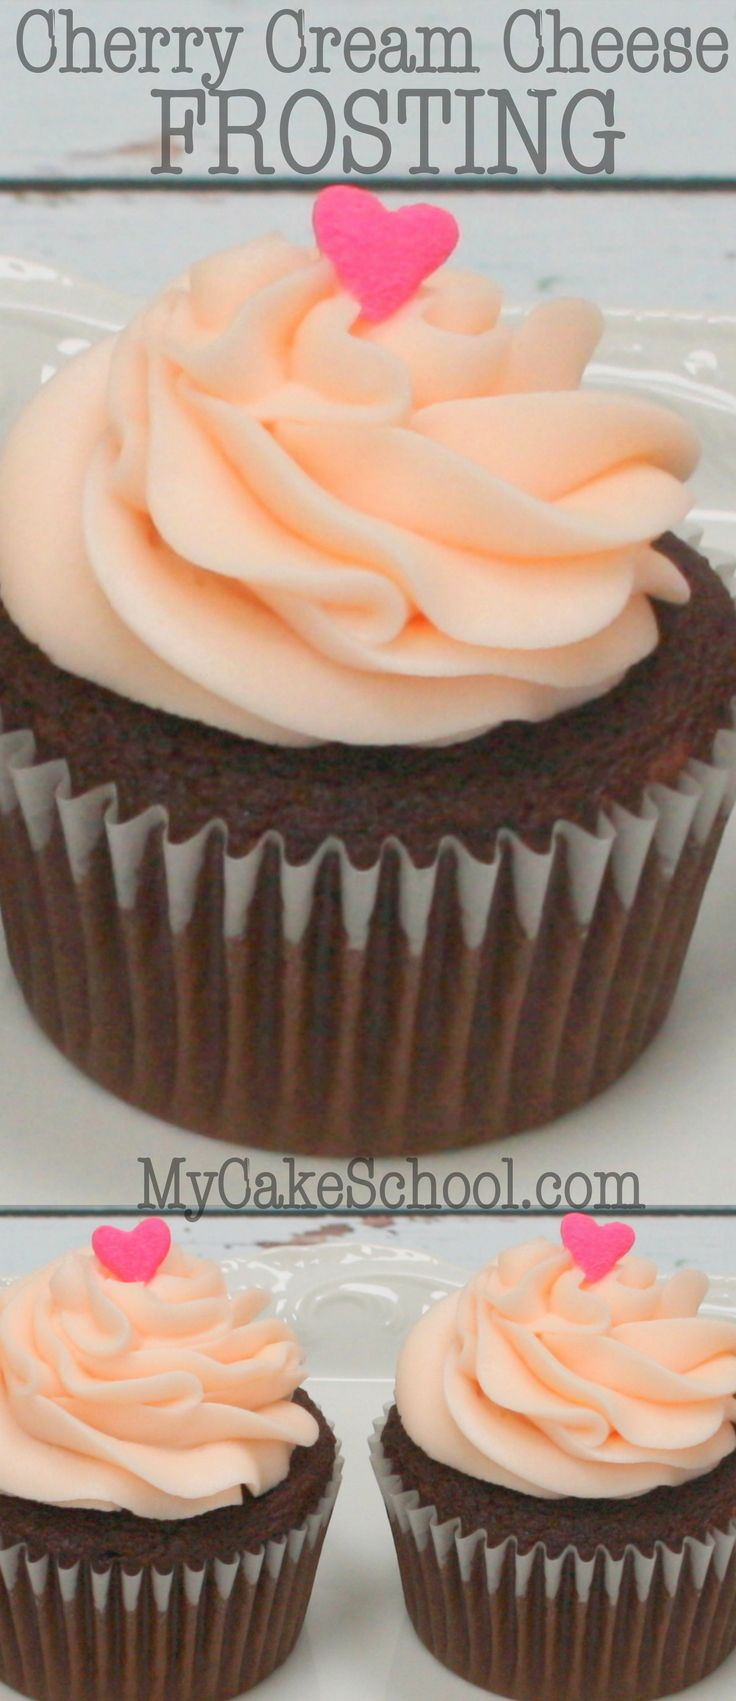 DELICIOUS Cherry Cream Cheese Frosting Recipe by MyCakeSchool.com! Online Tutorials, Videos, & Recipes!